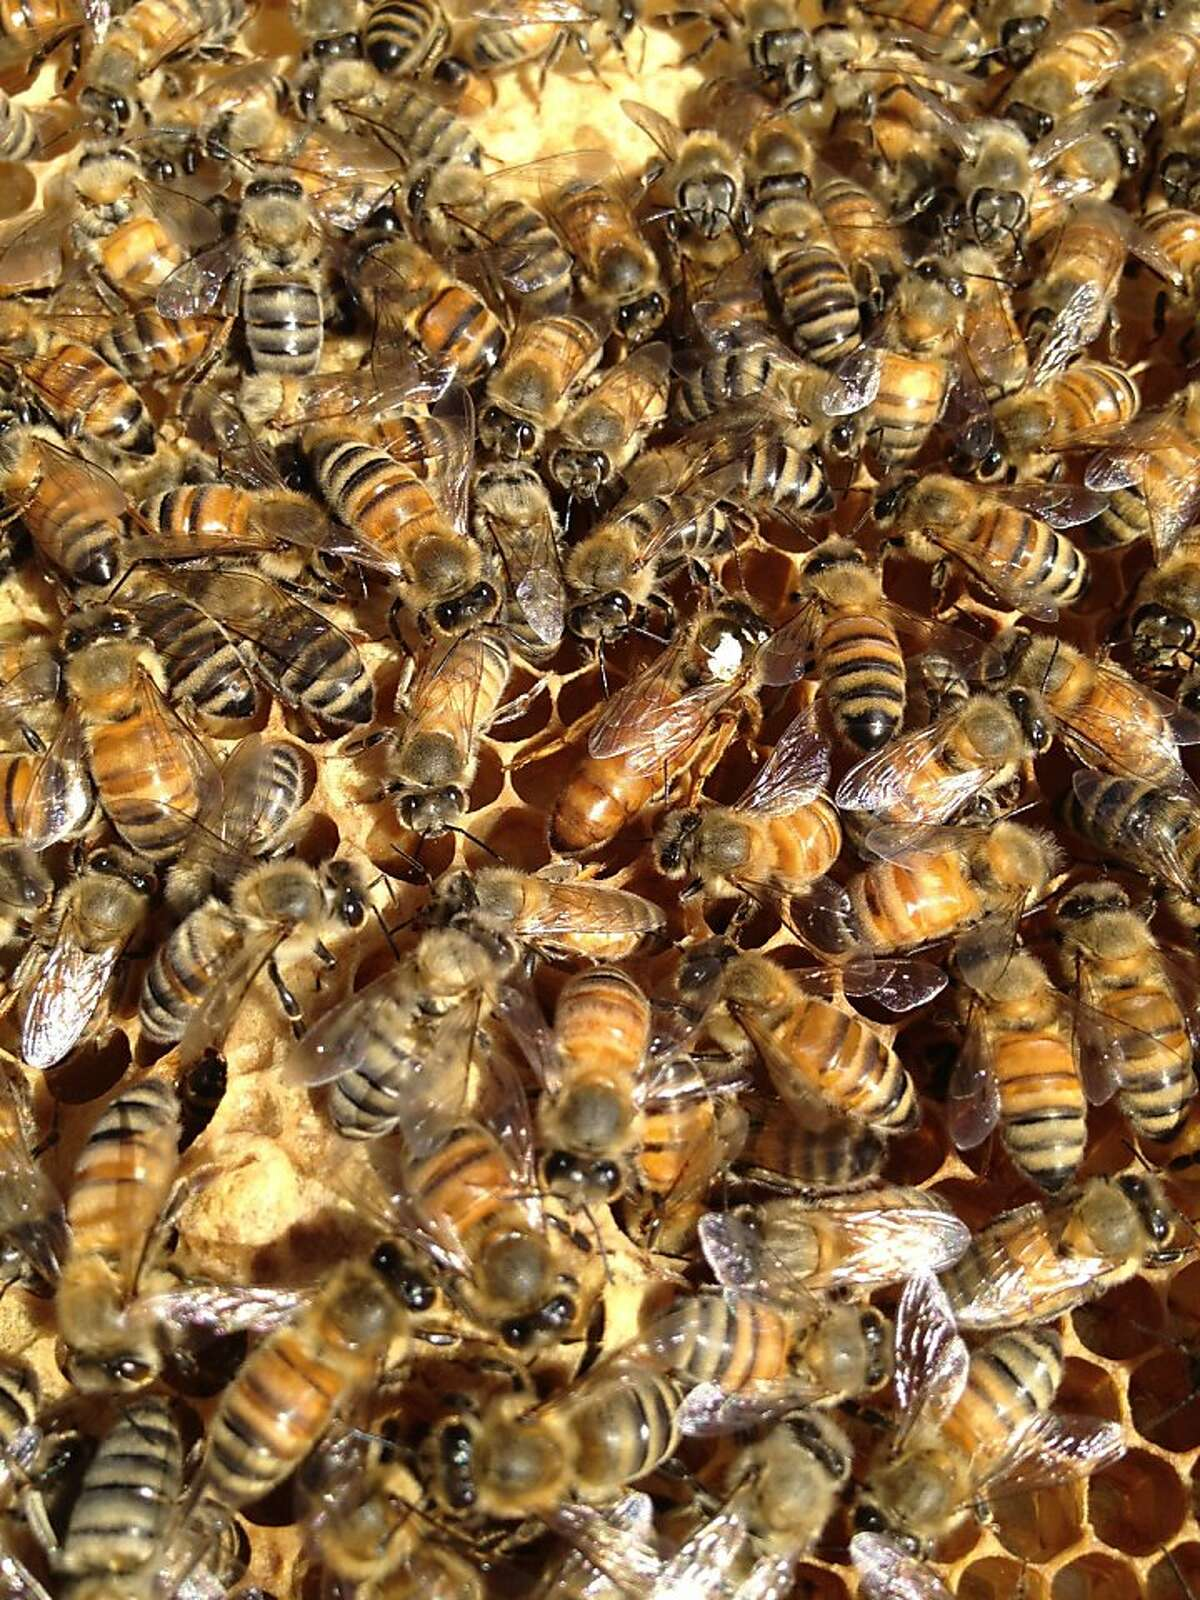 The queen bee (with white dot) lays eggs on a frame filled with brood comb.